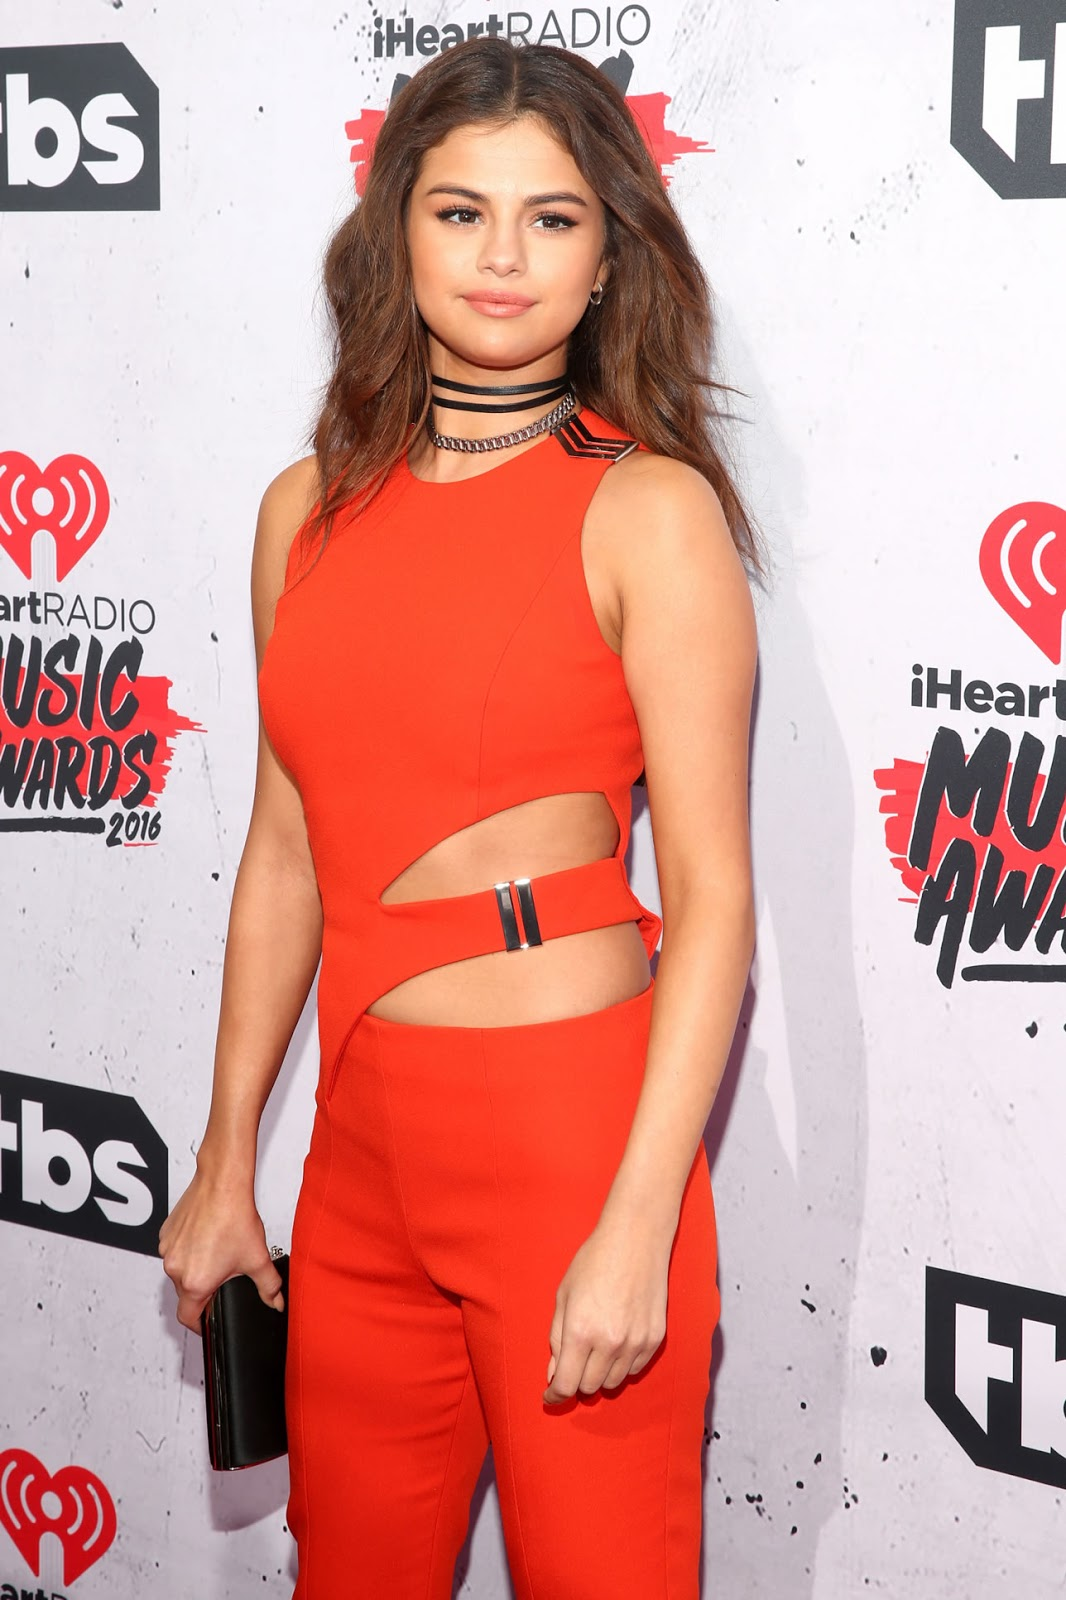 Selena Gomez for iHeartRadio